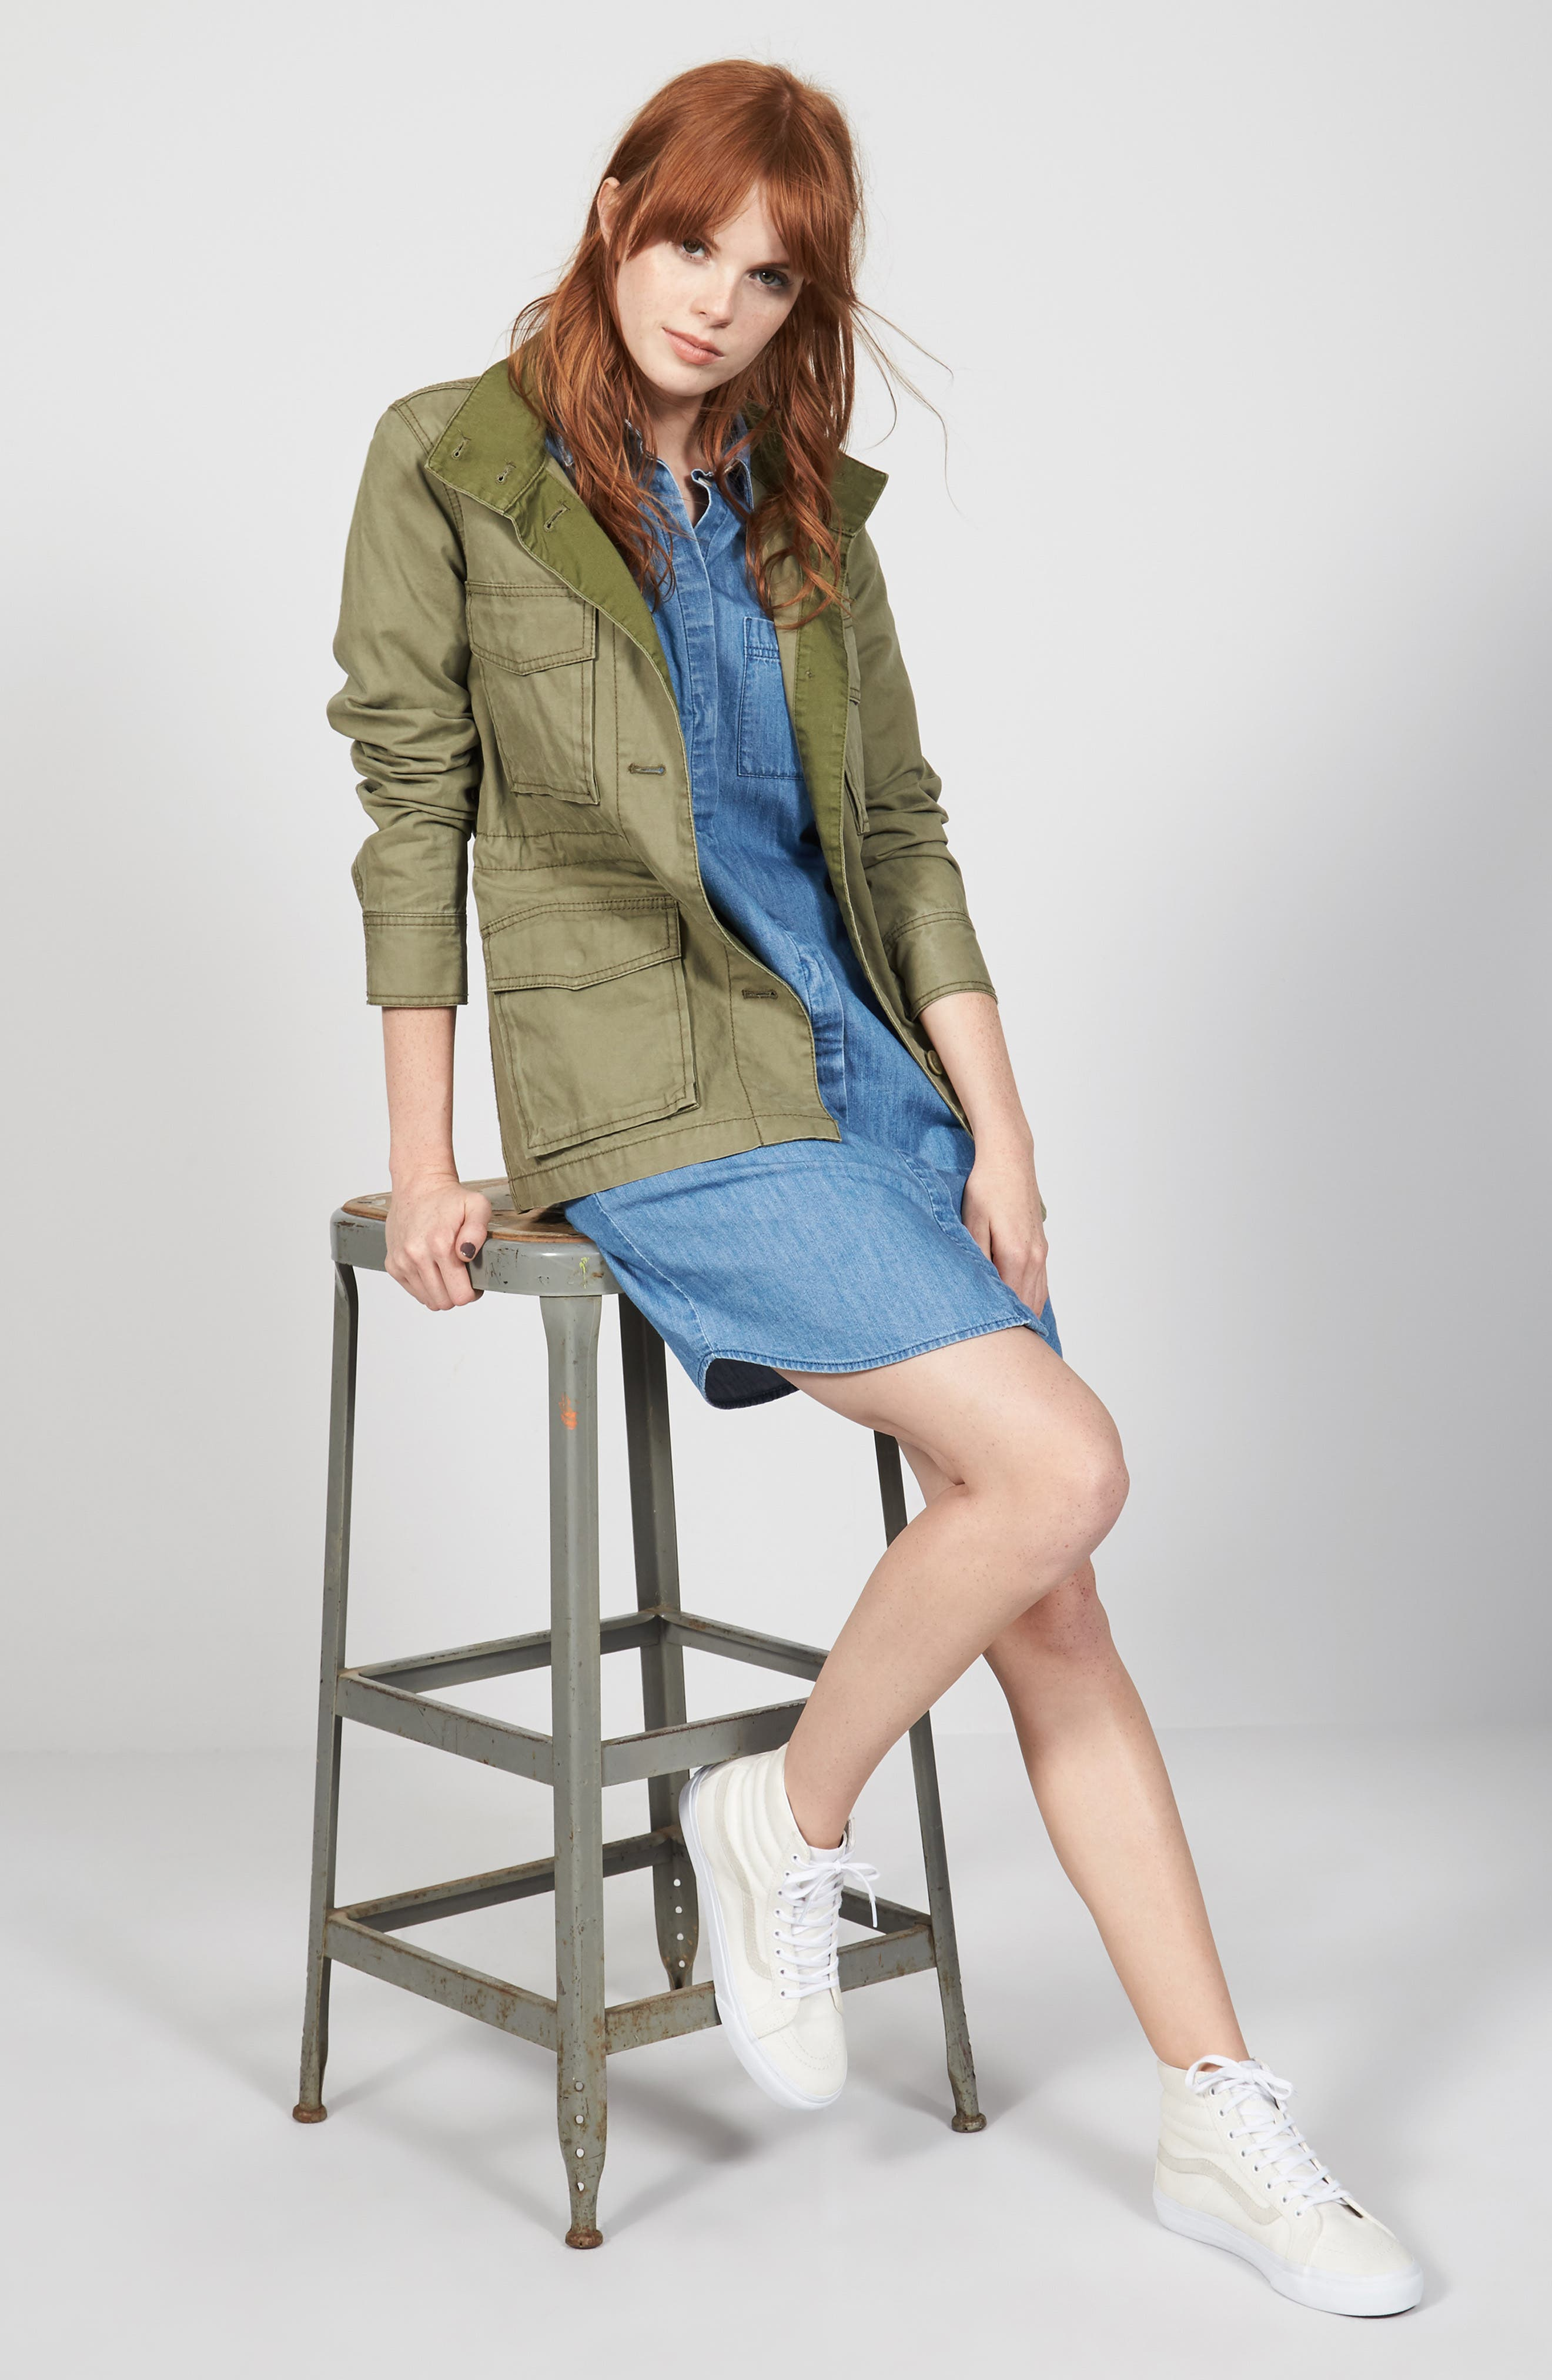 Madewell Jacket & Shirtdress Outfit with Accessories